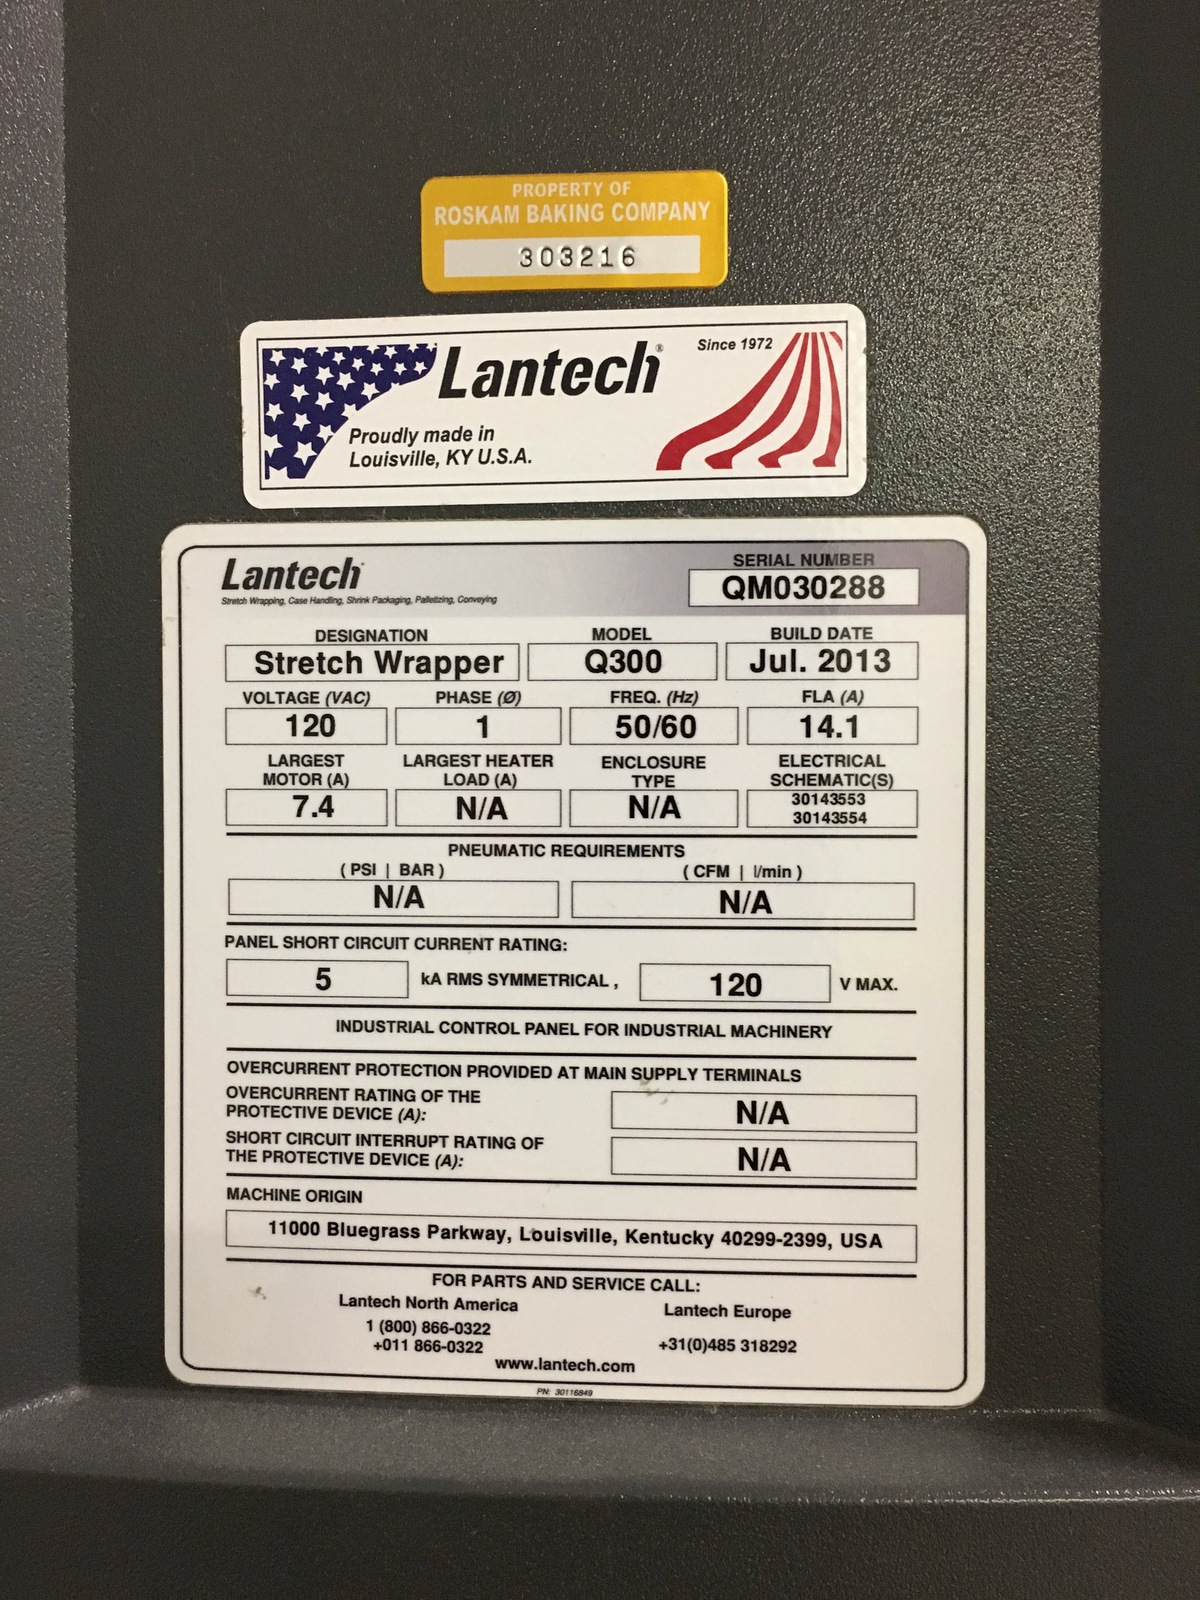 Lot 1W - 2013 Lantech Q300 Stretch Wrapper, 65in Turntable, 10ft Overall Height | Insp by Appt | Rig Fee: 400